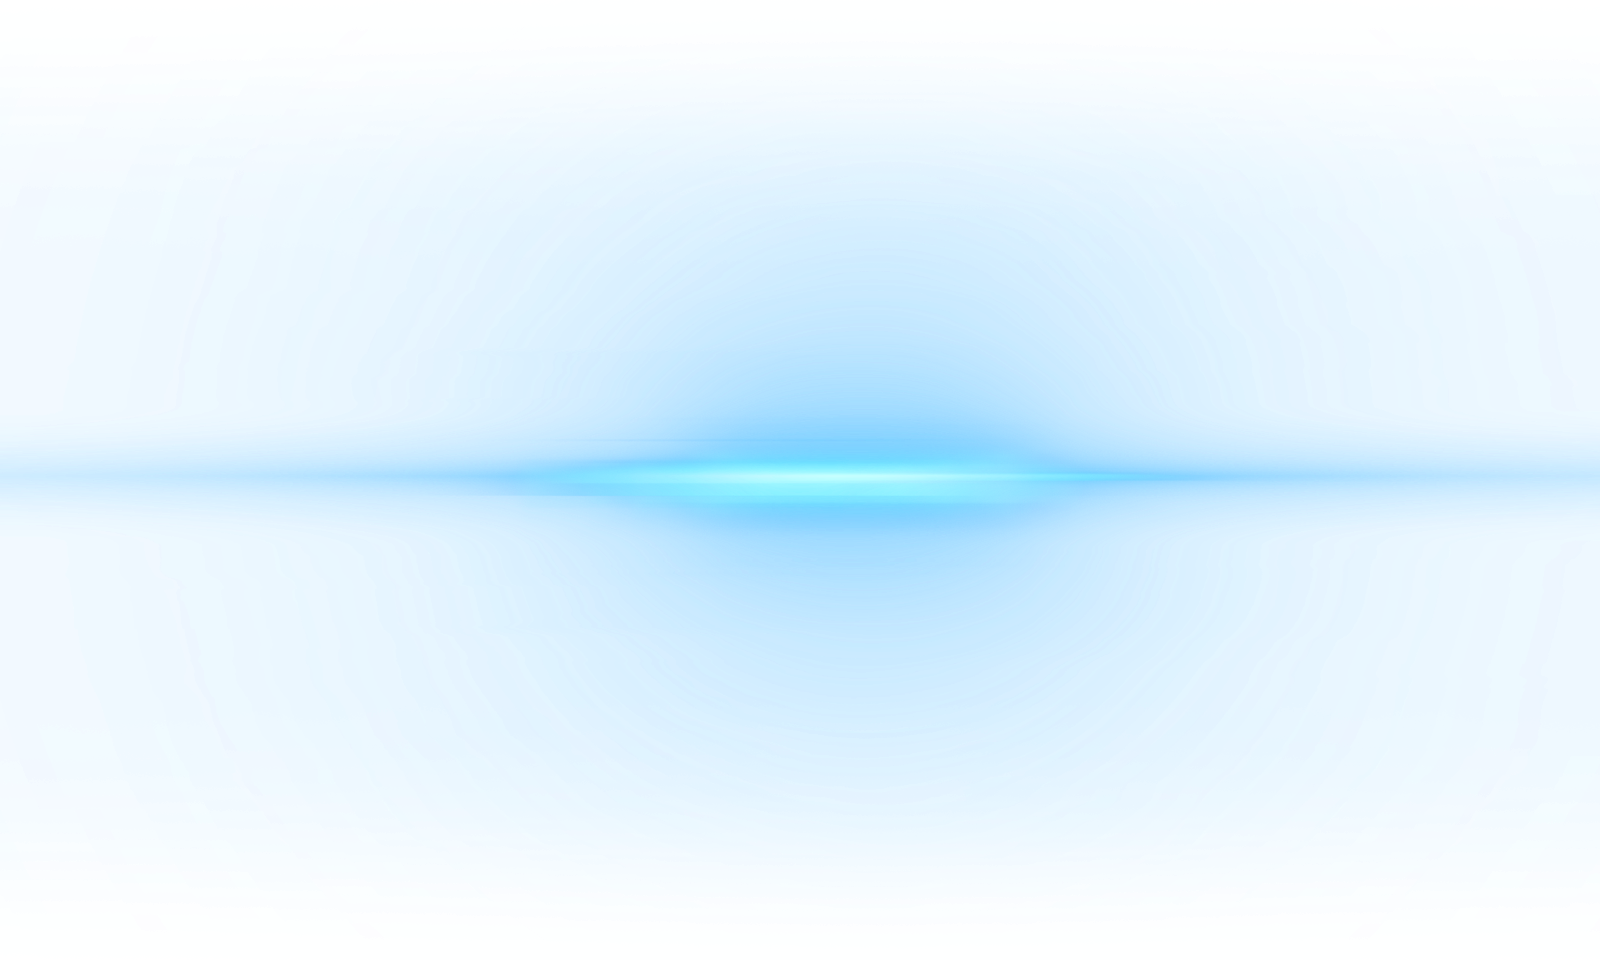 Blue glare png. Flare lens images transparent